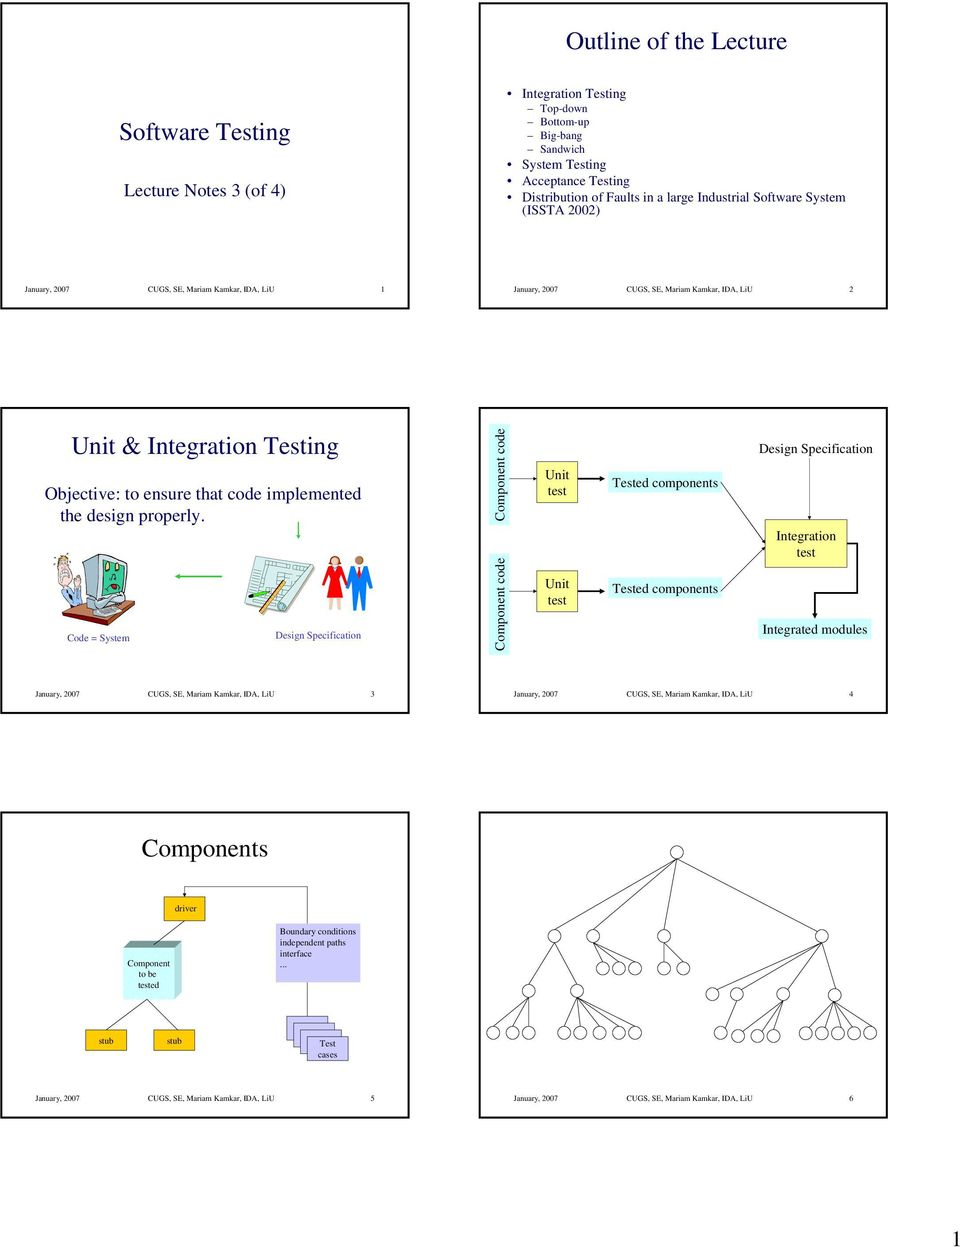 ode = System esign Specifiction omponent code omponent code Unit Unit Tested components Tested components esign Specifiction Integrtion Integrted modules Jnury, 2007 US, S, Mrim Kmkr, I, LiU 3